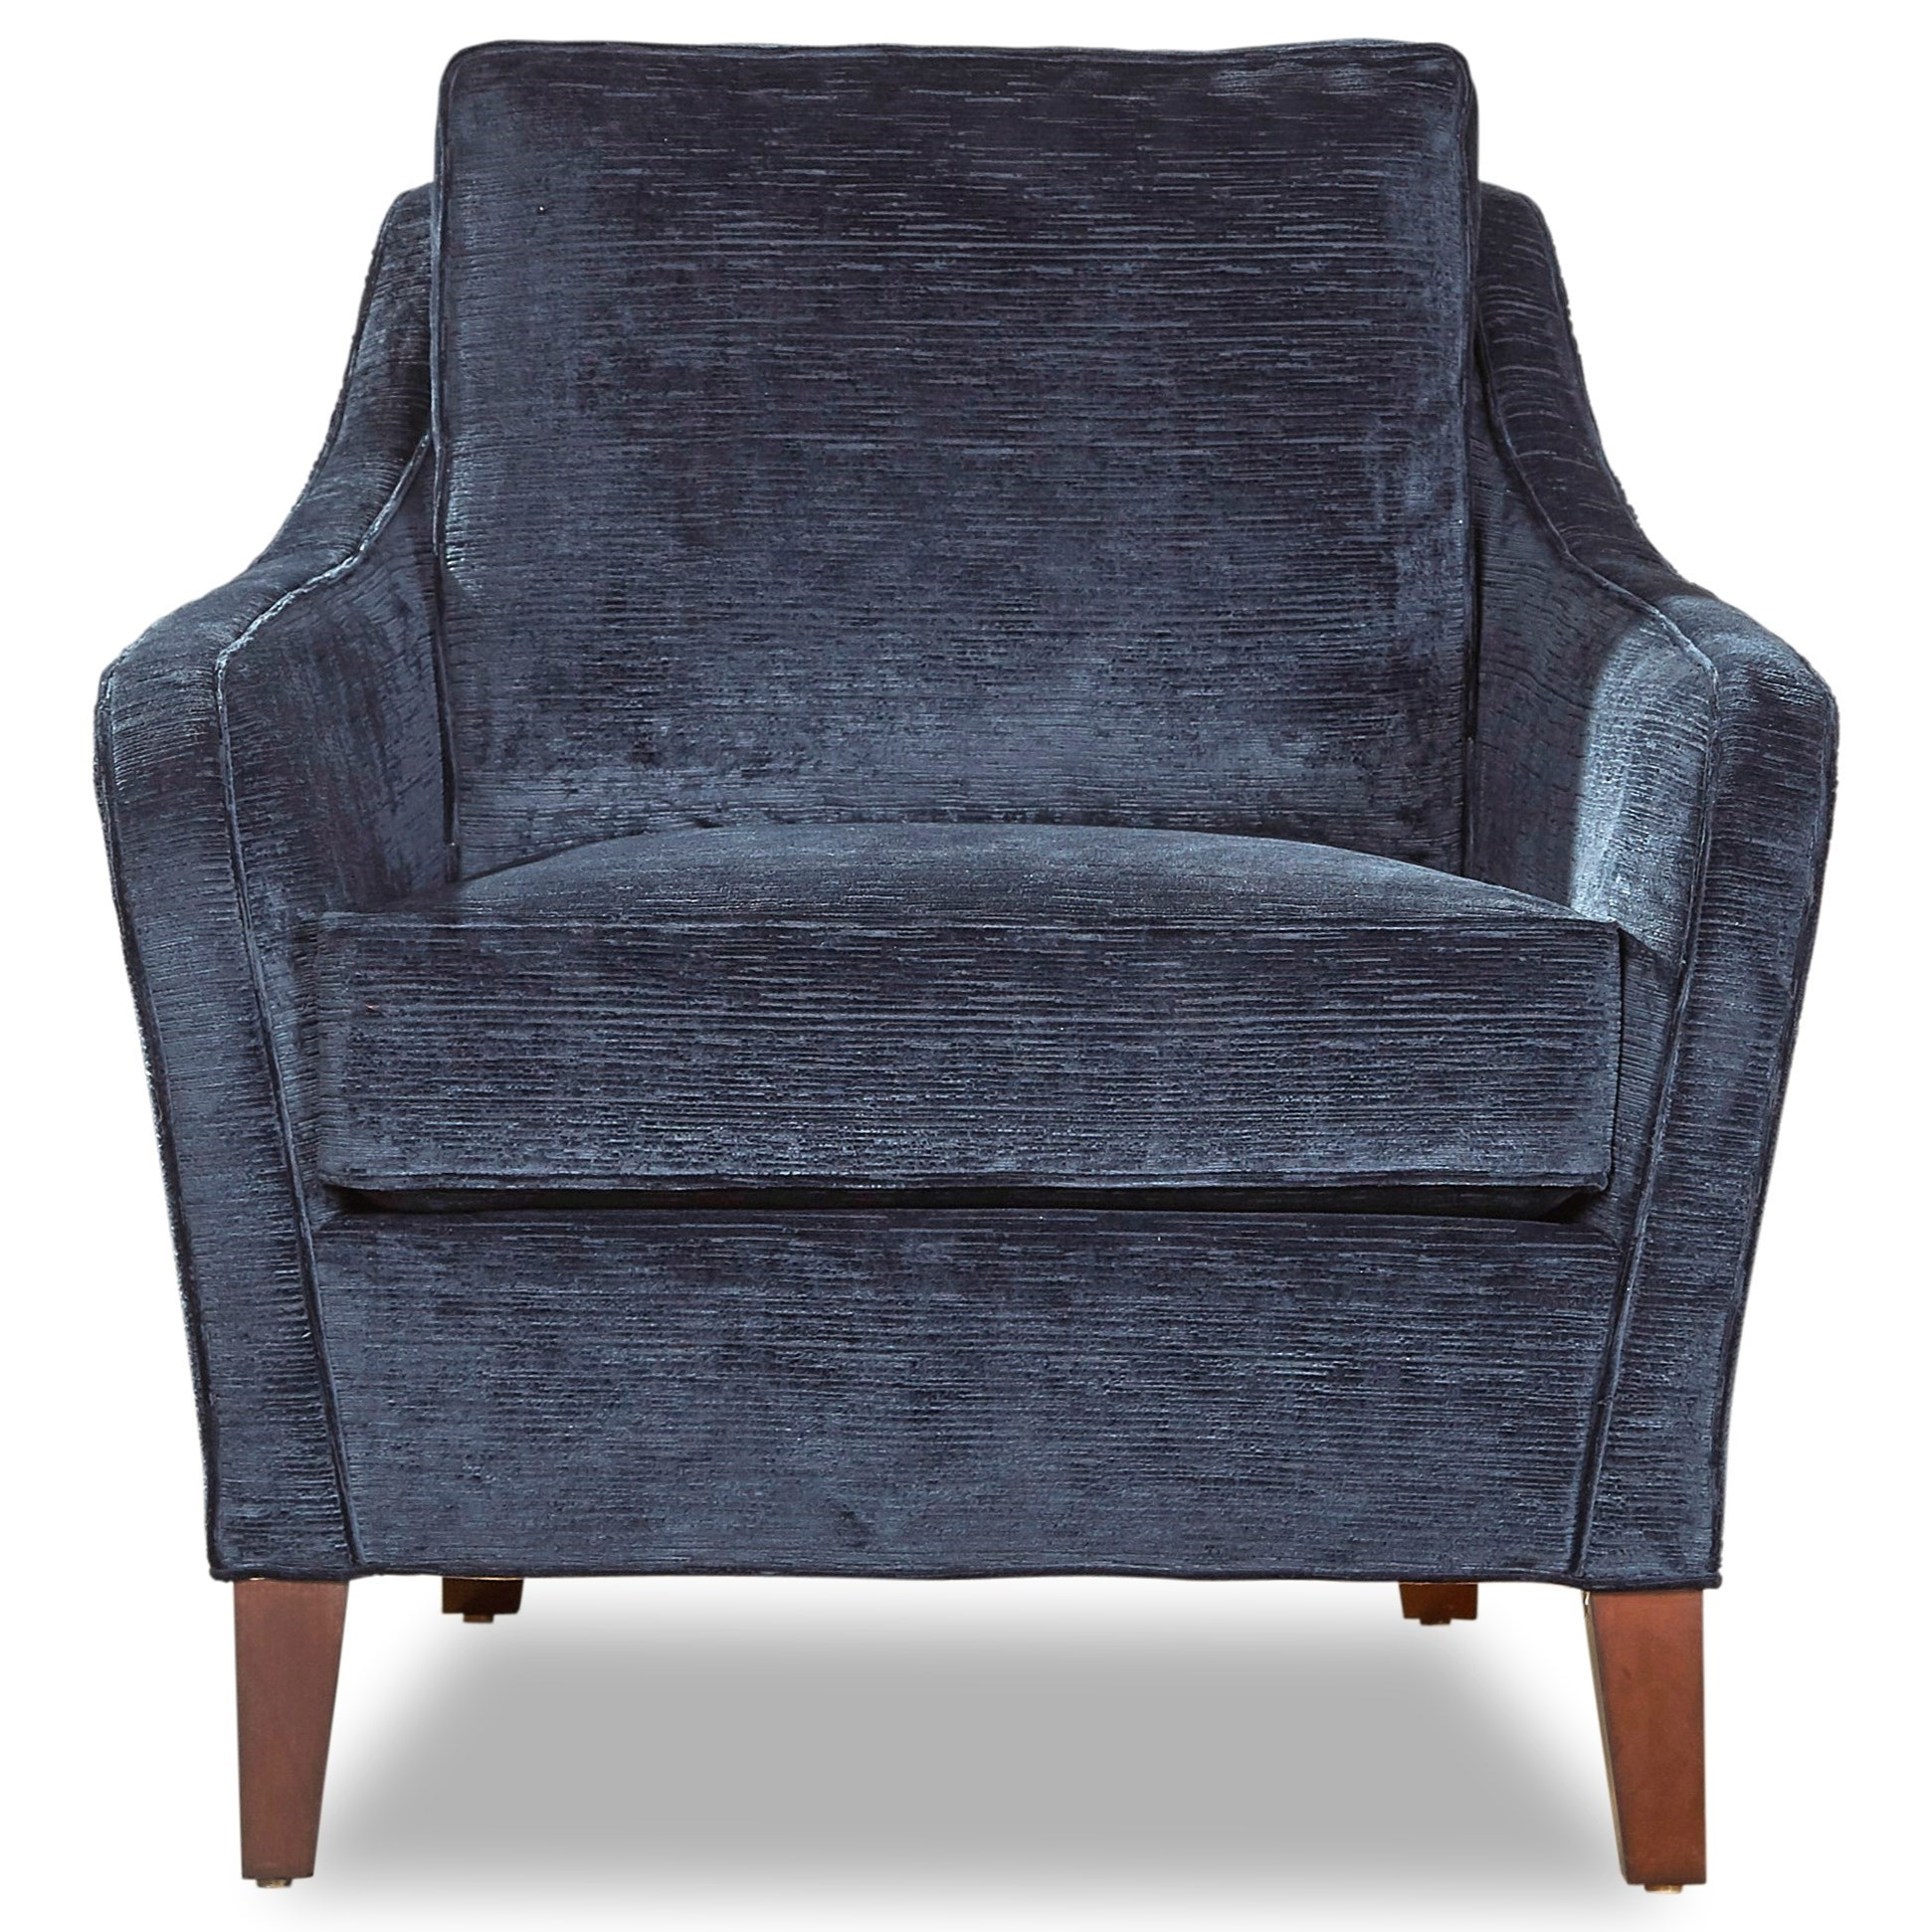 7287 Chair by Huntington House at Belfort Furniture